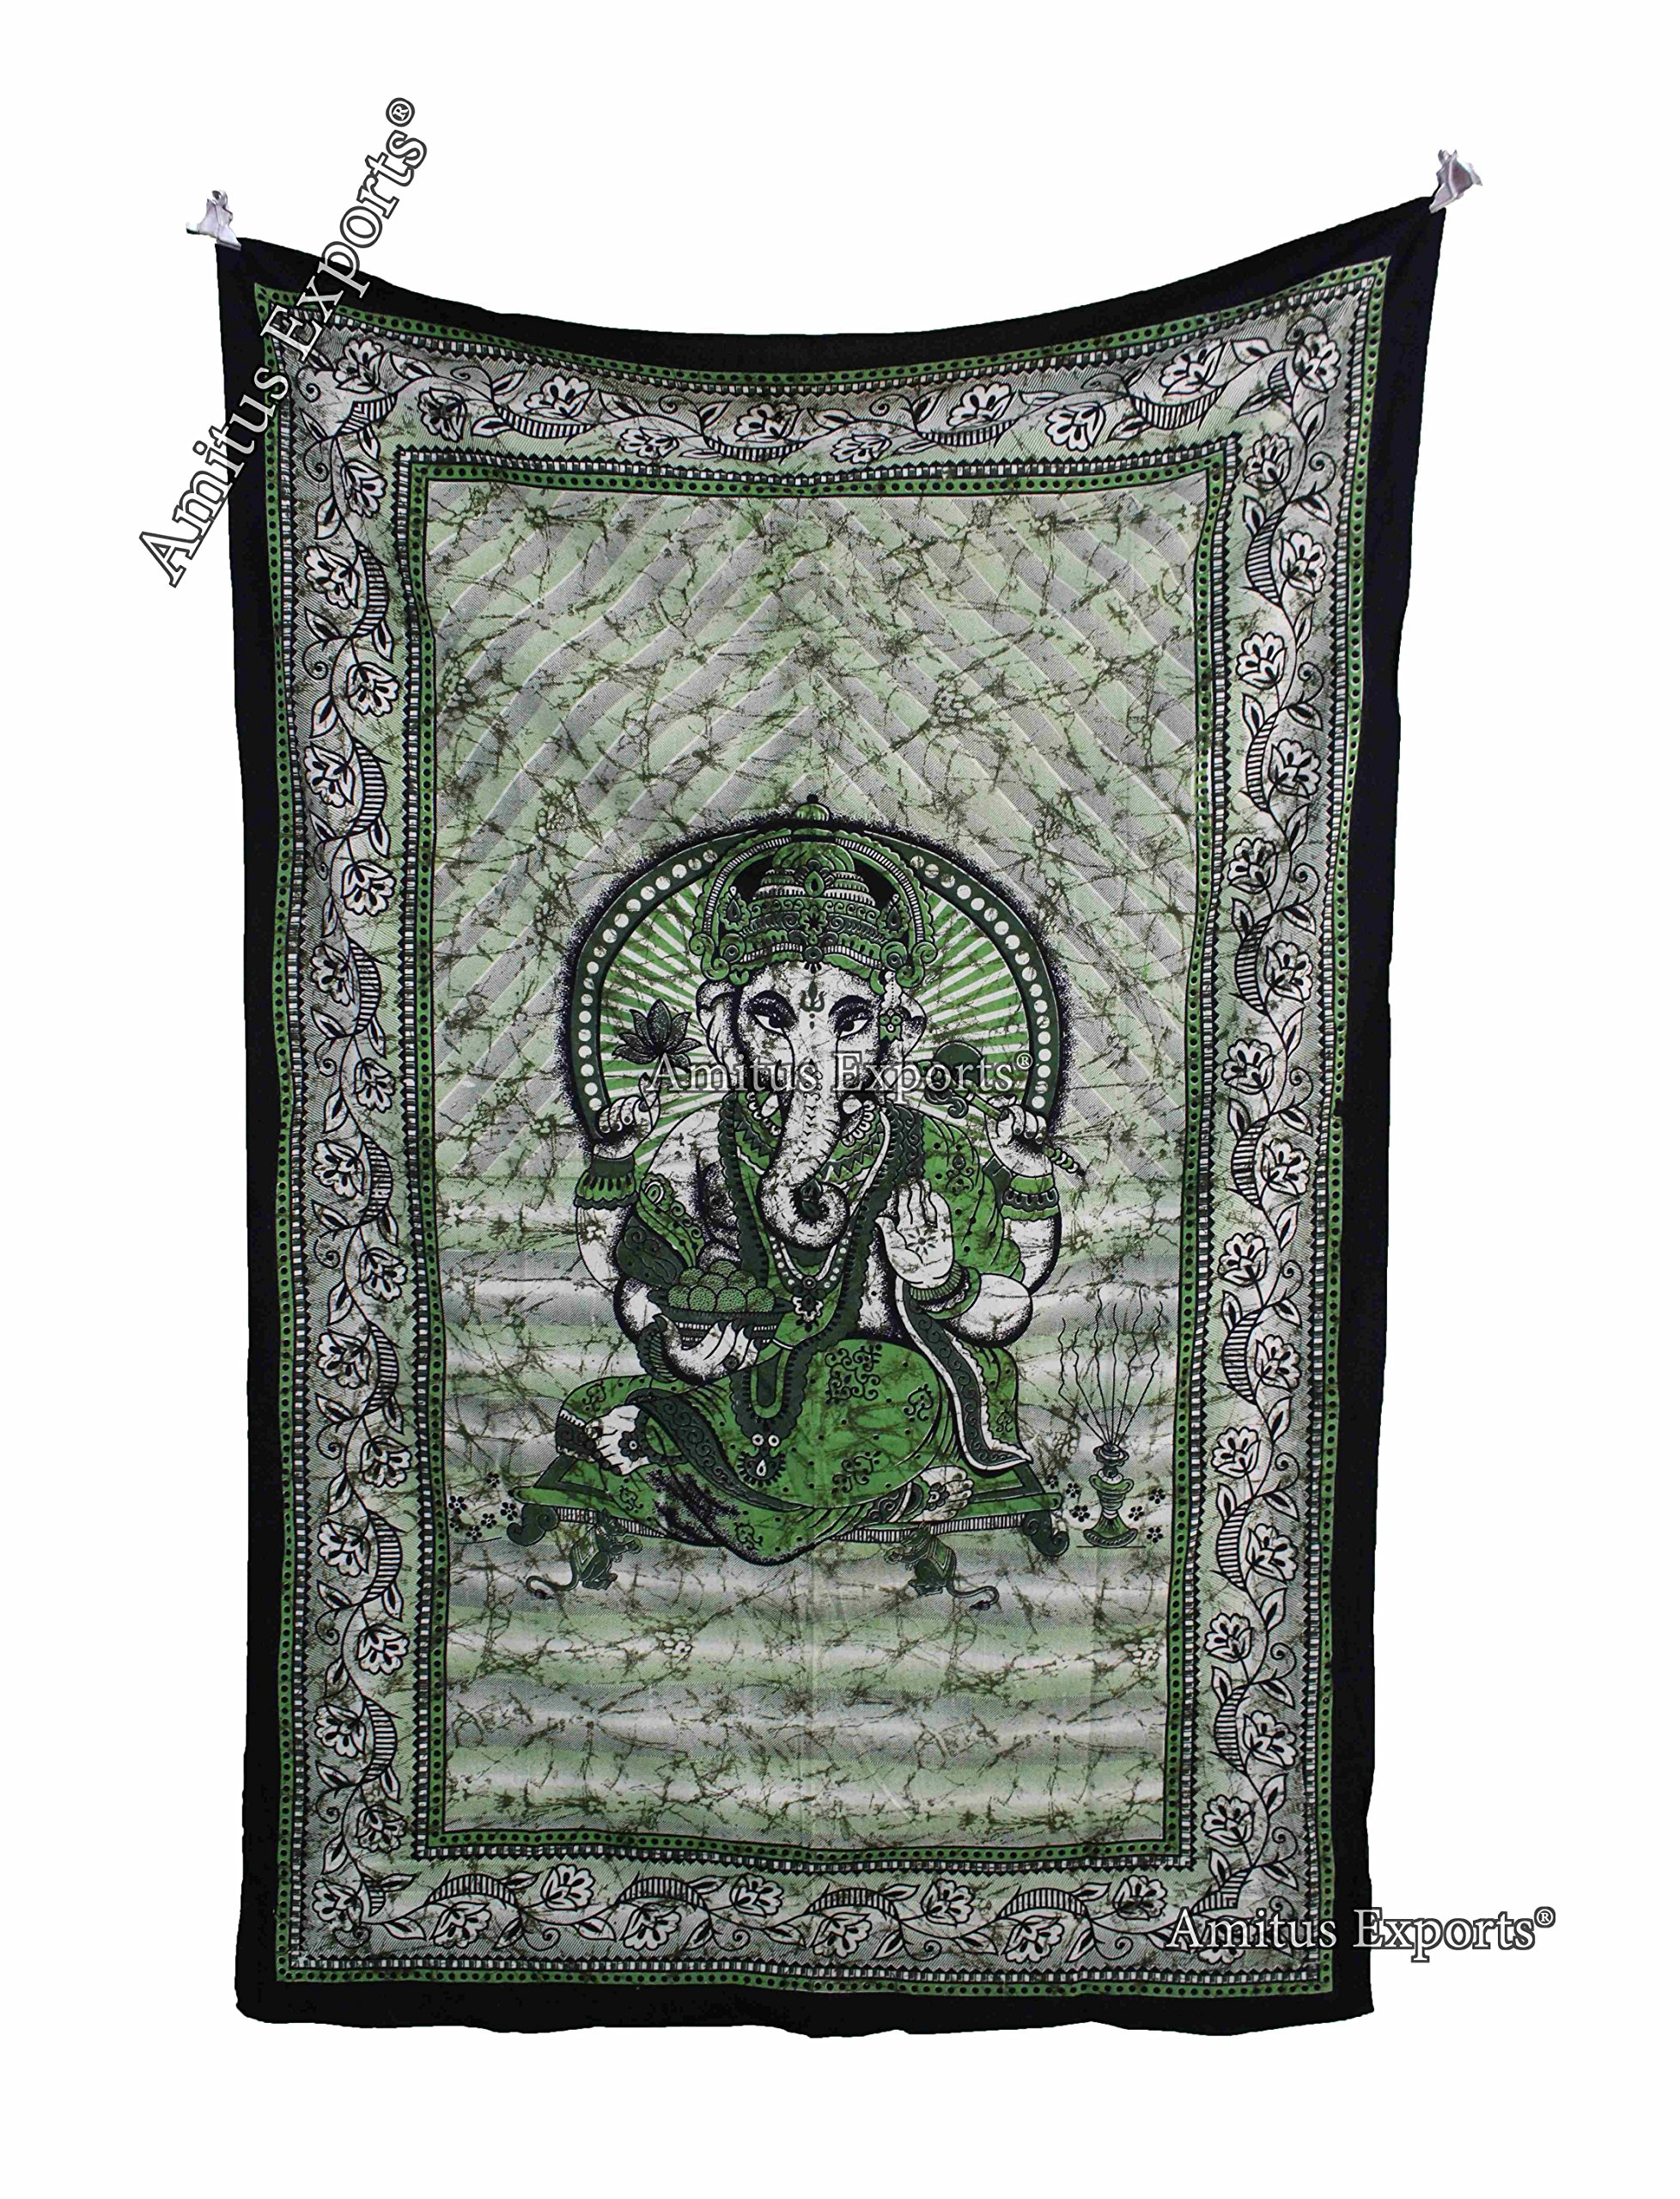 Amitus Exports TM Premium Quality 1 X Batik Lord Ganesha 81''X54''(Approx.) Inches Green Multi Color Twin Size Cotton Fabric Tapestry Hippy Indian Mandala Throws (Handmade In India)